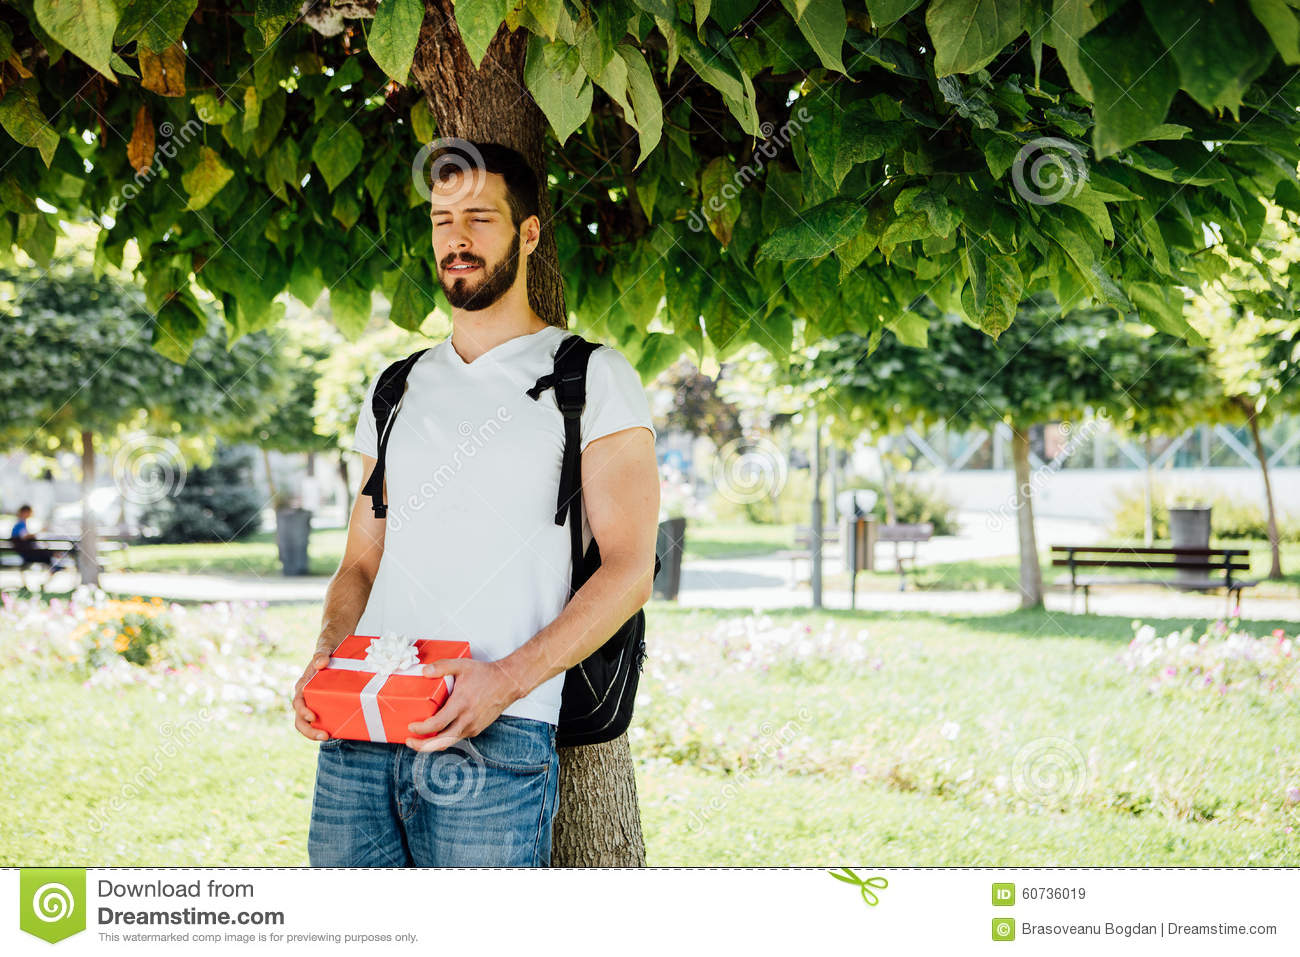 Man with backpack and a gift next to a tree